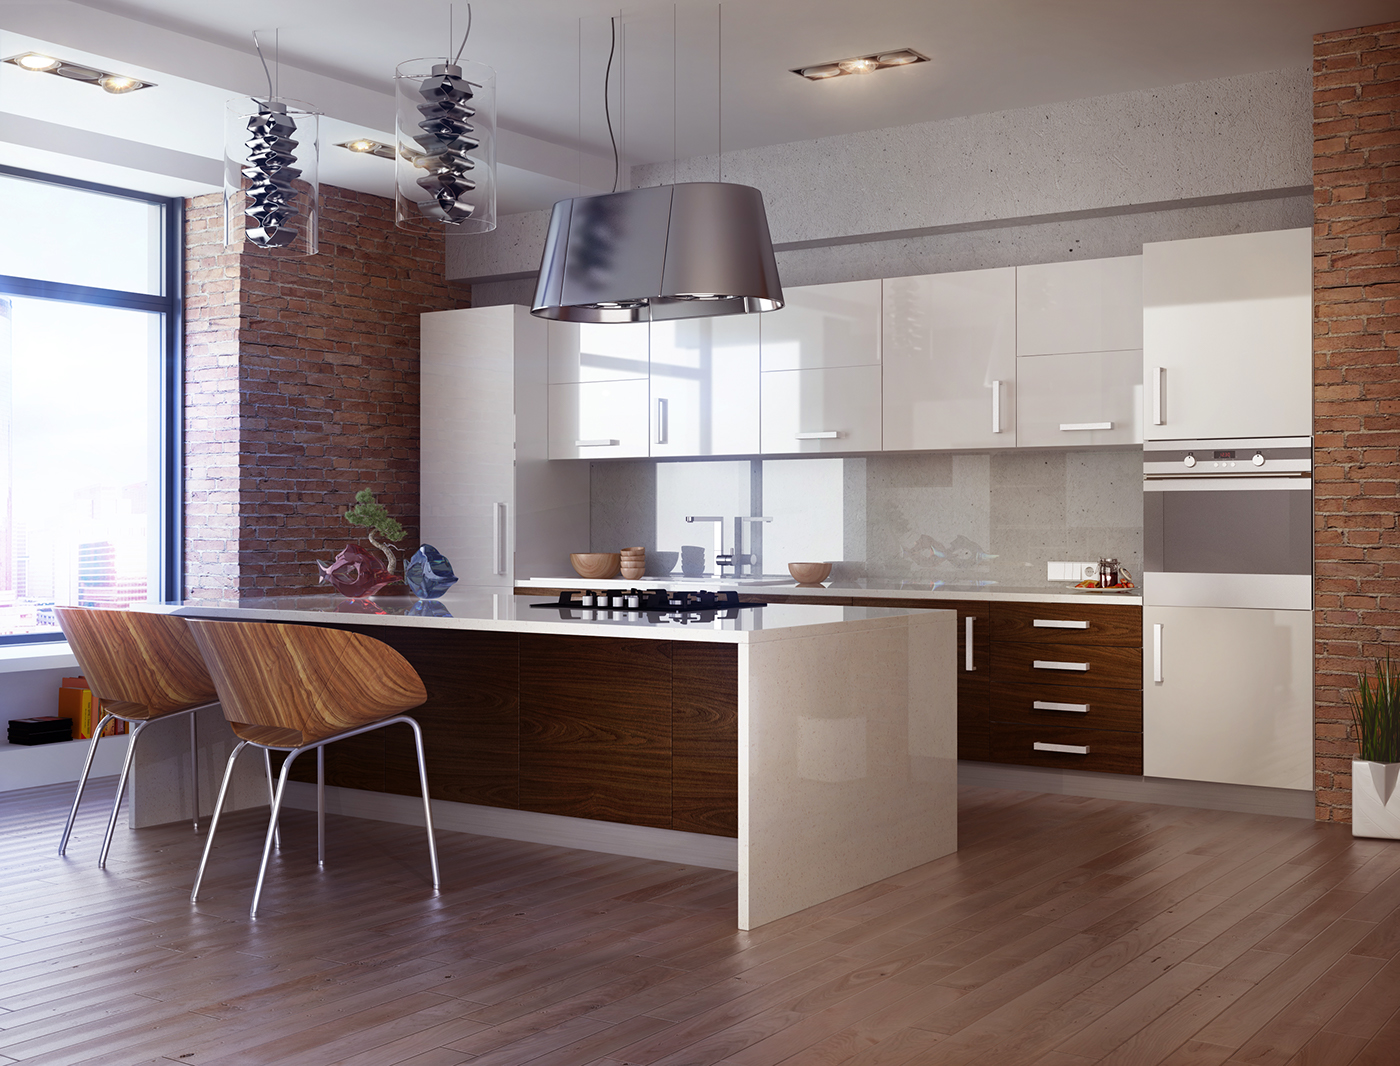 kitchen design visualizer visualization kitchen company ronikon on behance 1400